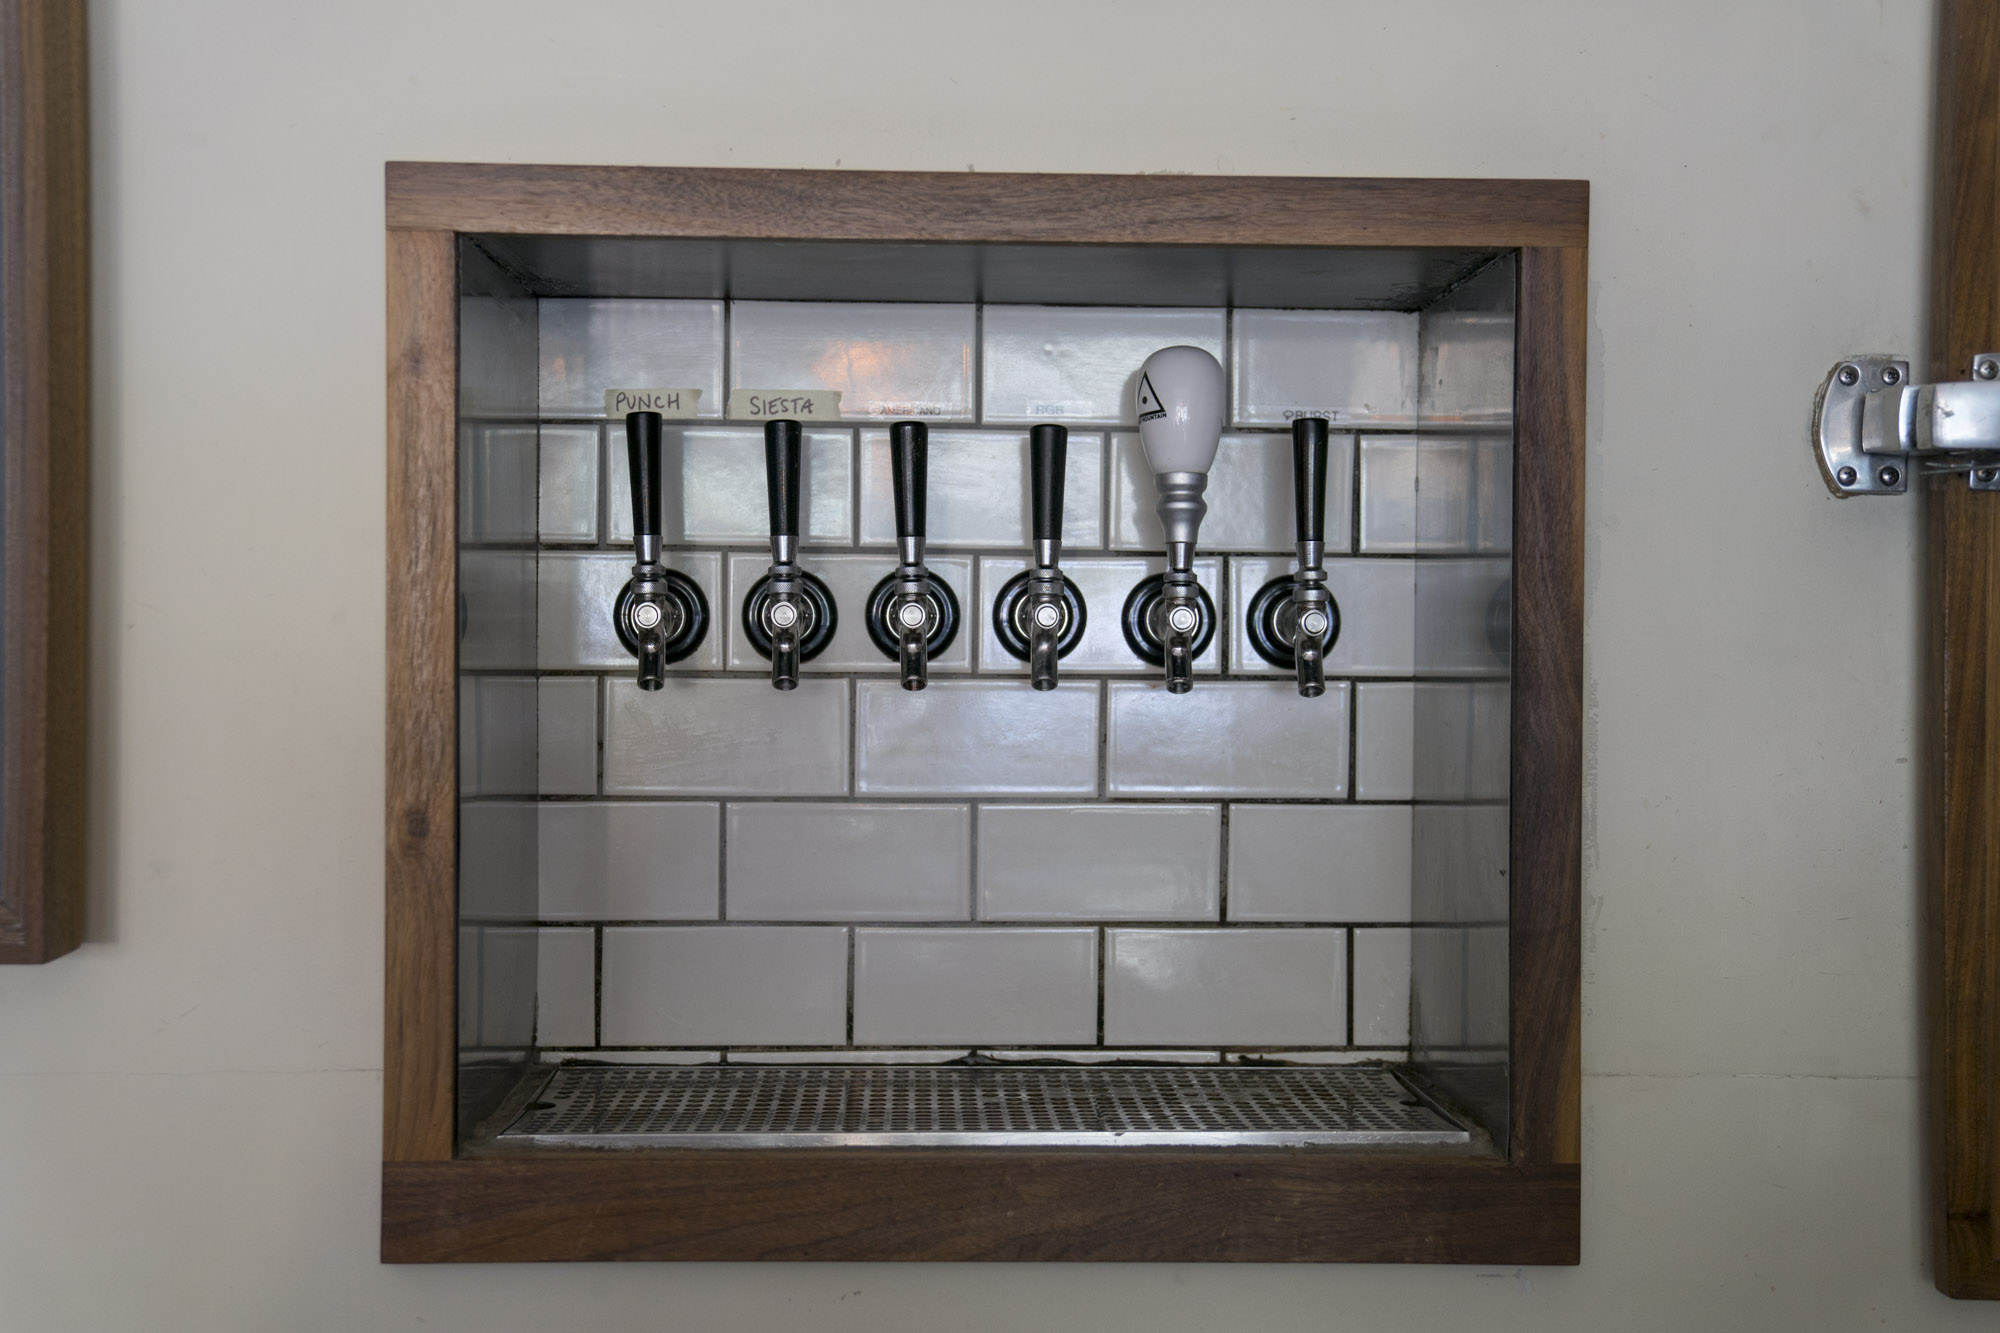 The beer taps at Essex in Seattle.